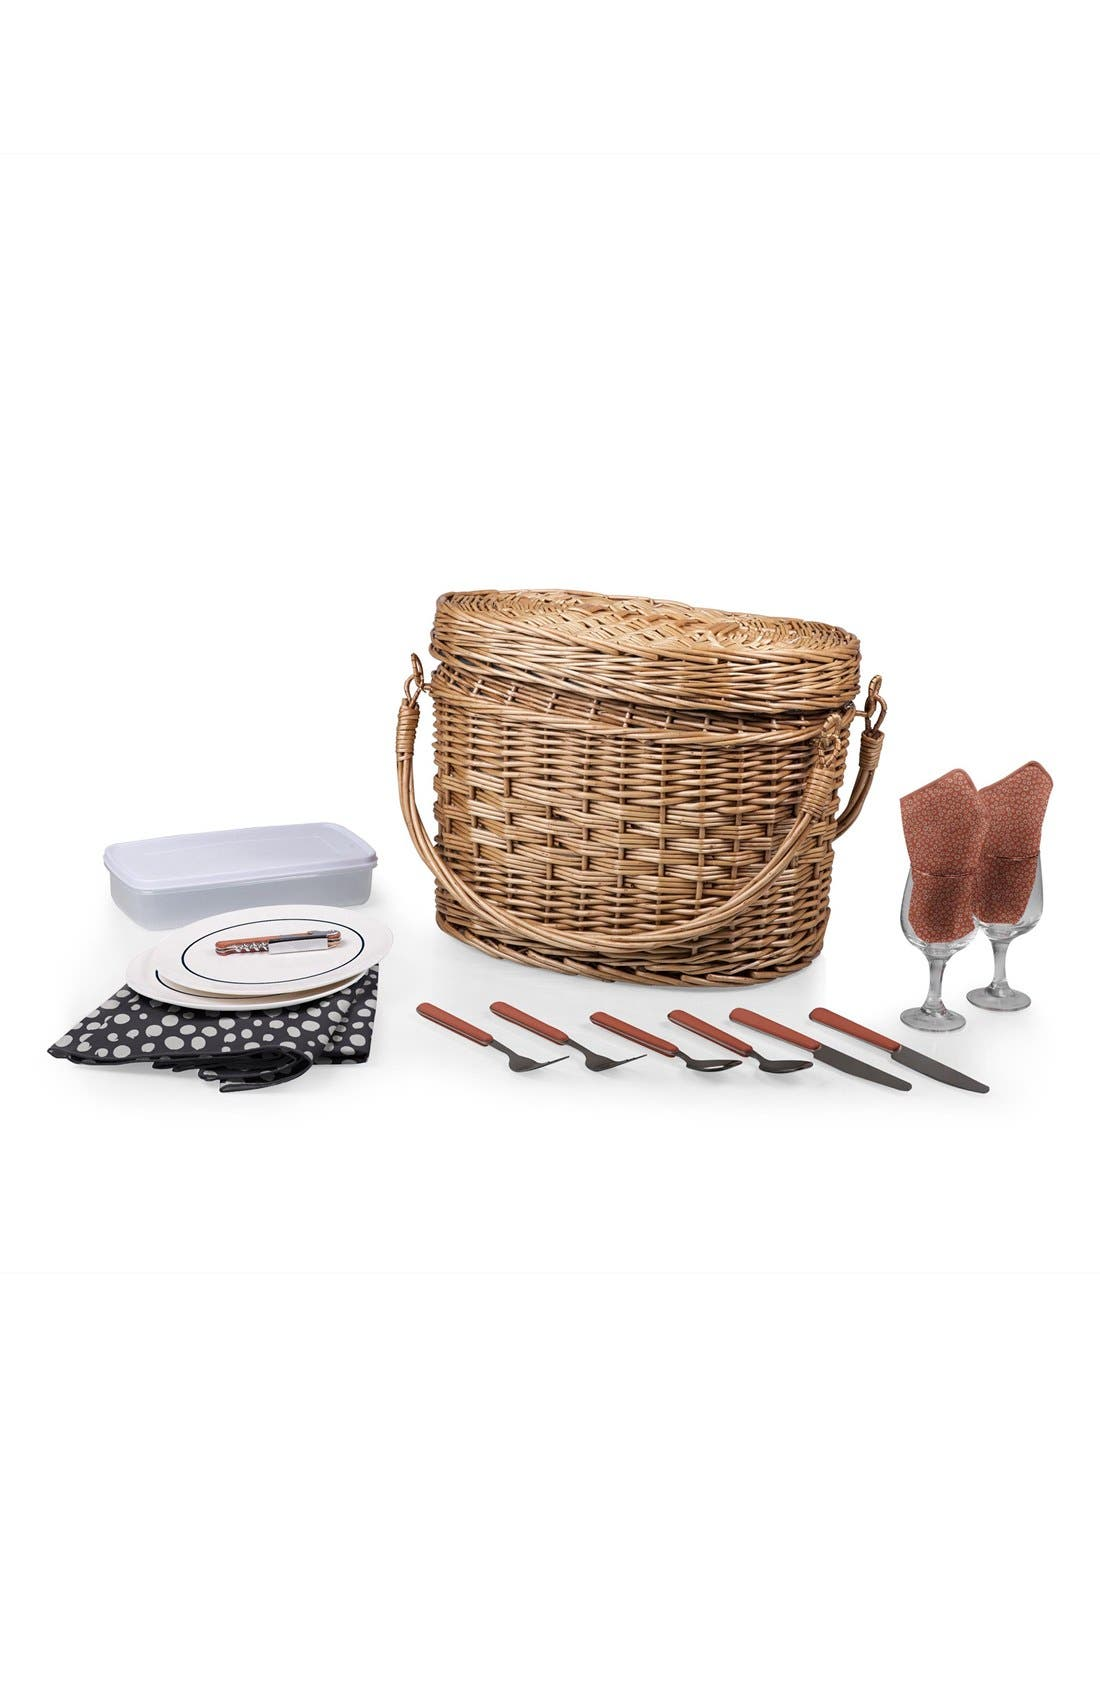 'Romance' Picnic Basket,                             Alternate thumbnail 2, color,                             400